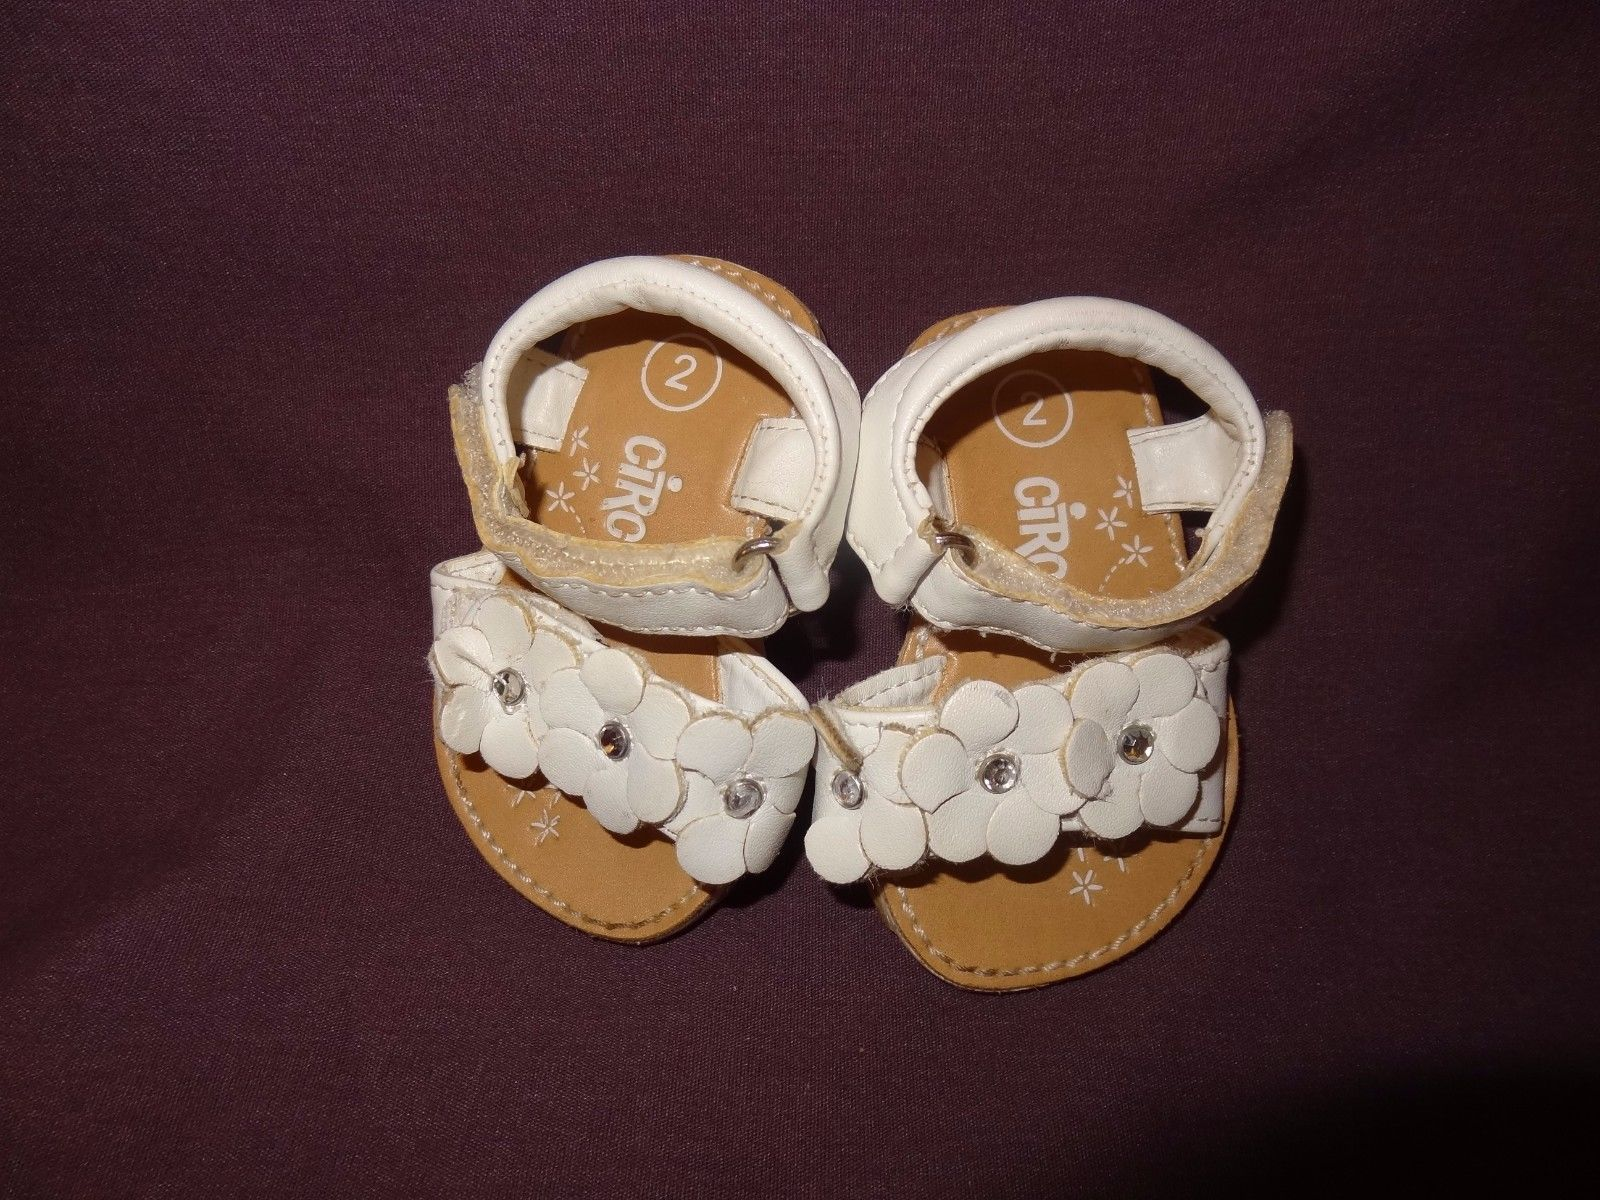 52543de0ab13 Sandals Shoes White Size 2 or 6 - 9 Months Baby Girls Circo Flowers 2009  Target